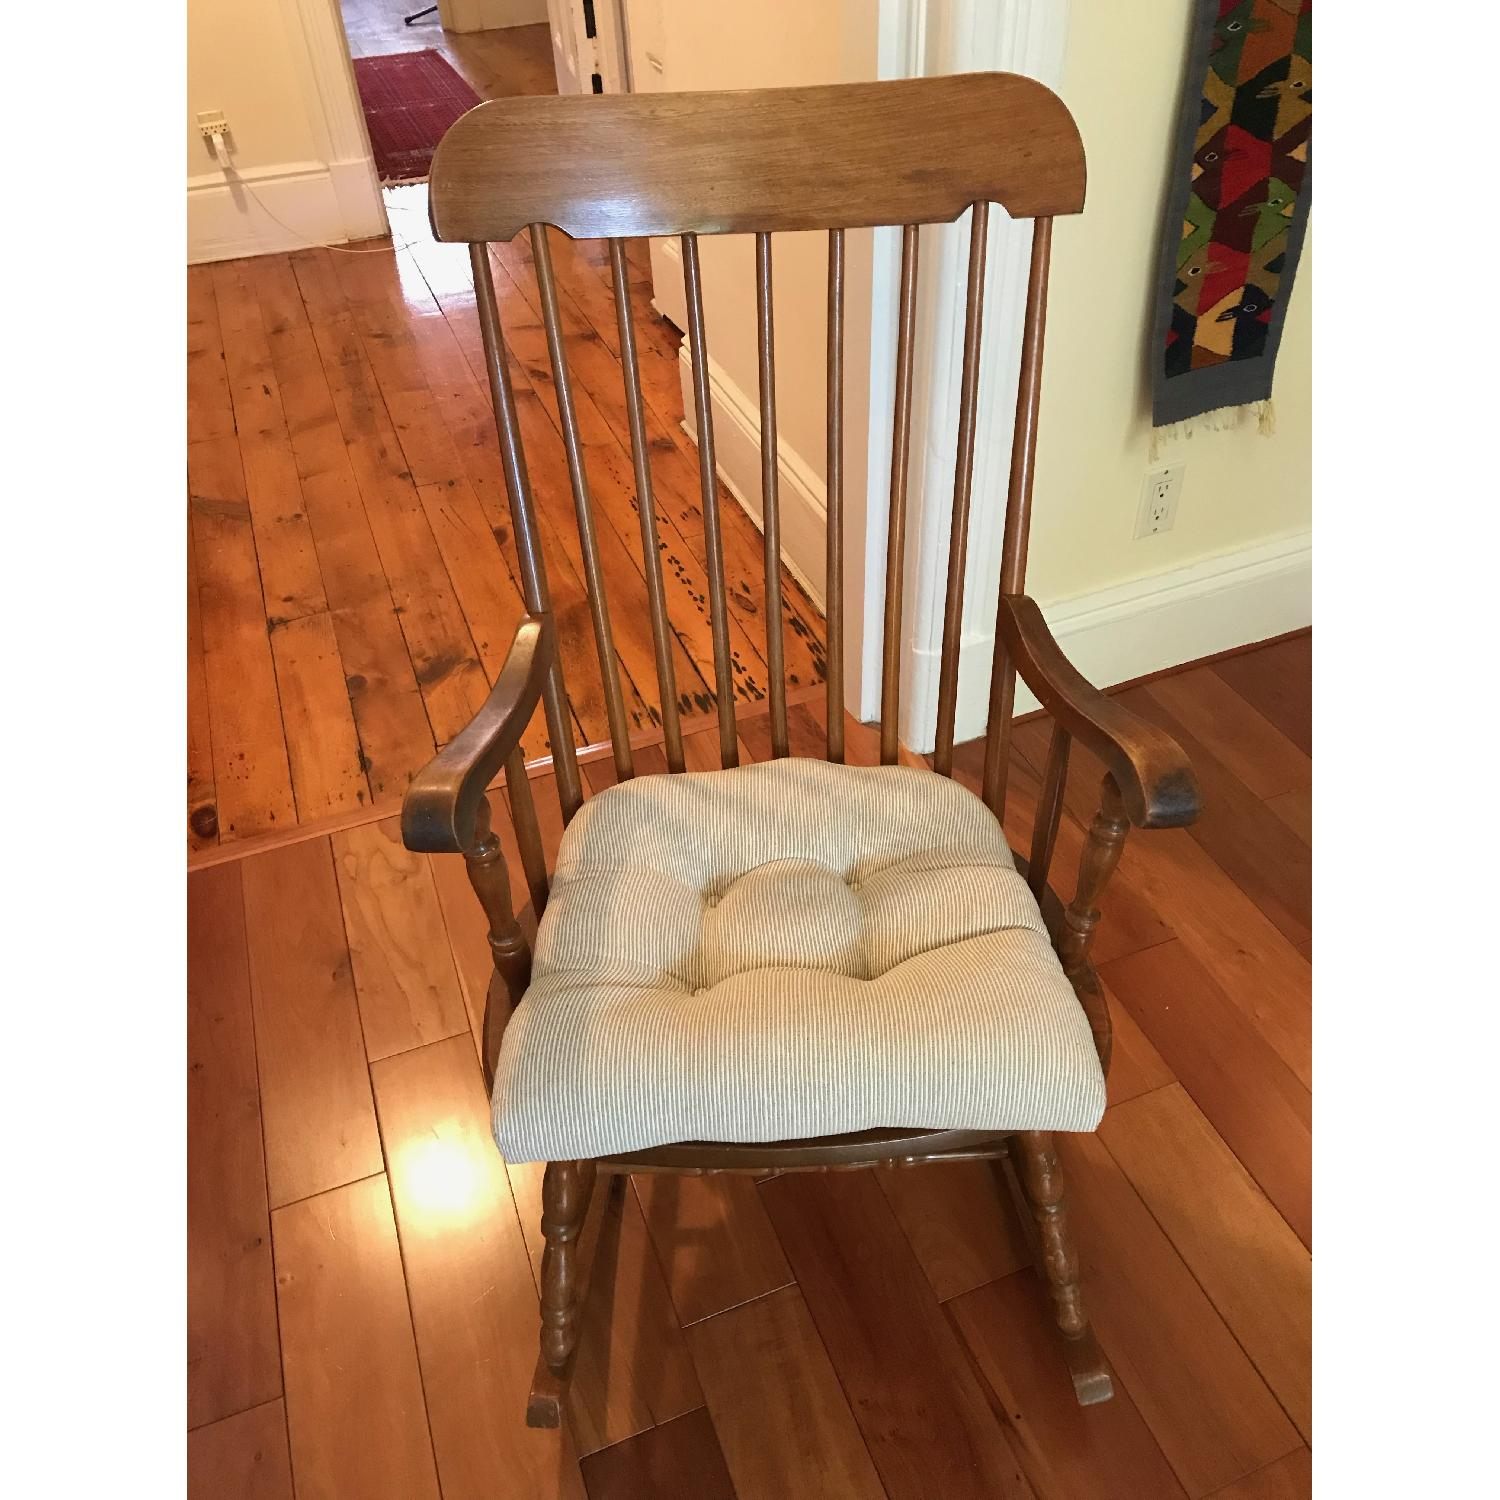 Vintage Wooden Rocking Chair - image-1